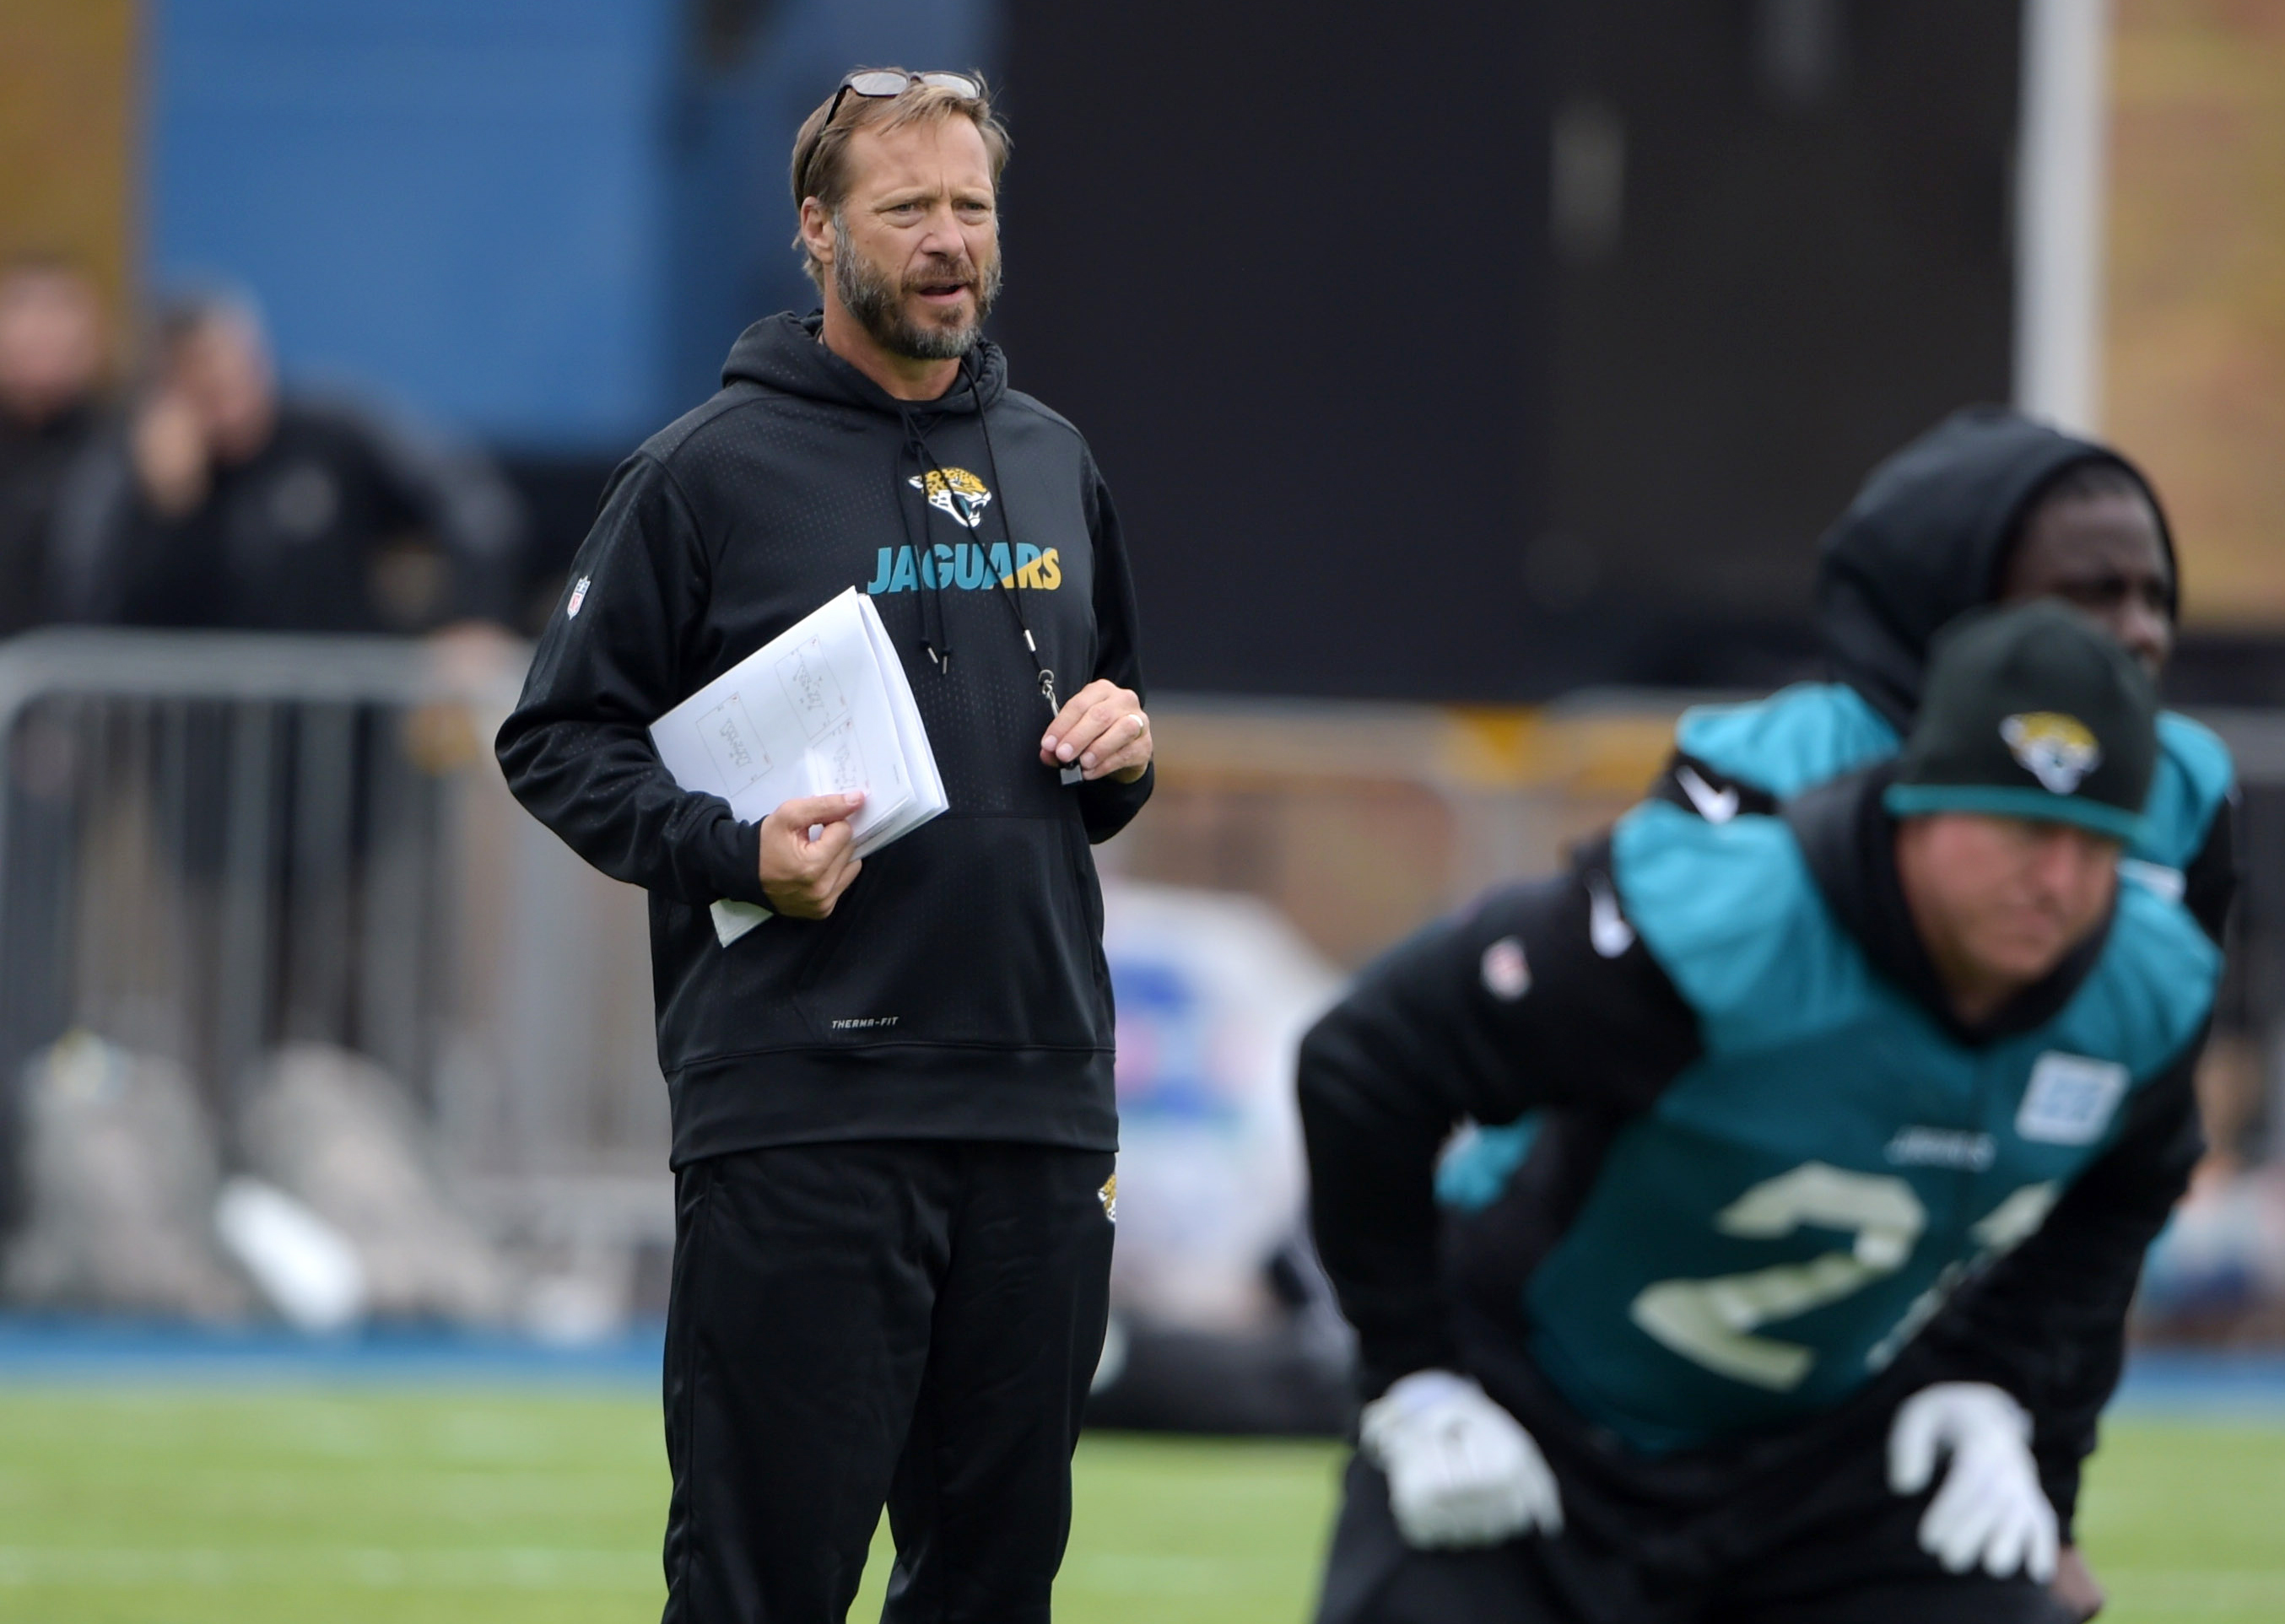 8879118-nfl-international-series-jacksonville-jaguars-practice